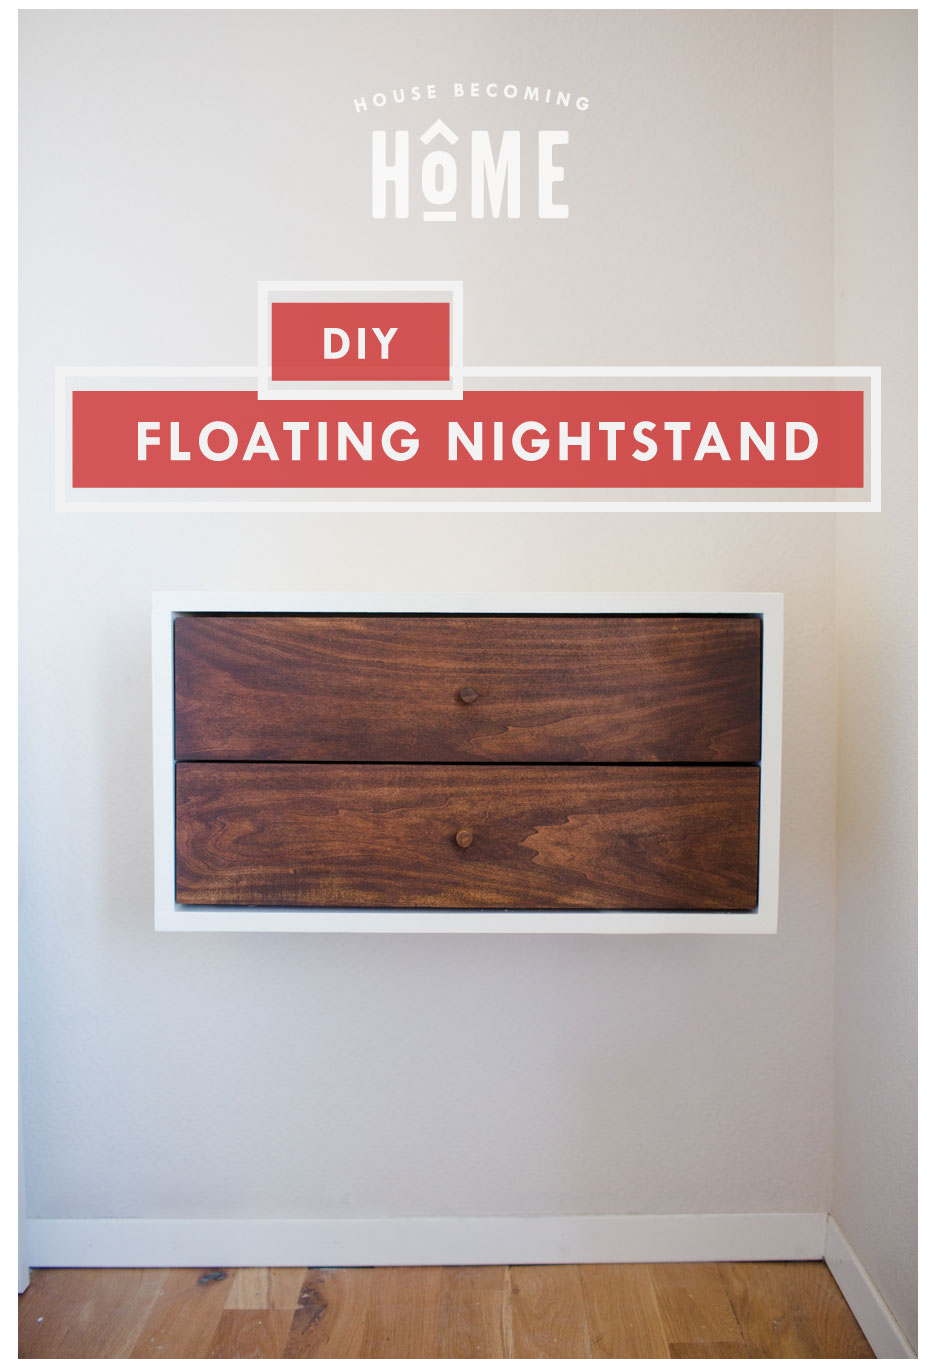 How to Build a Simple and Affordable DIY Floating Nightstand with Drawers. Includes free printable pdf plans.